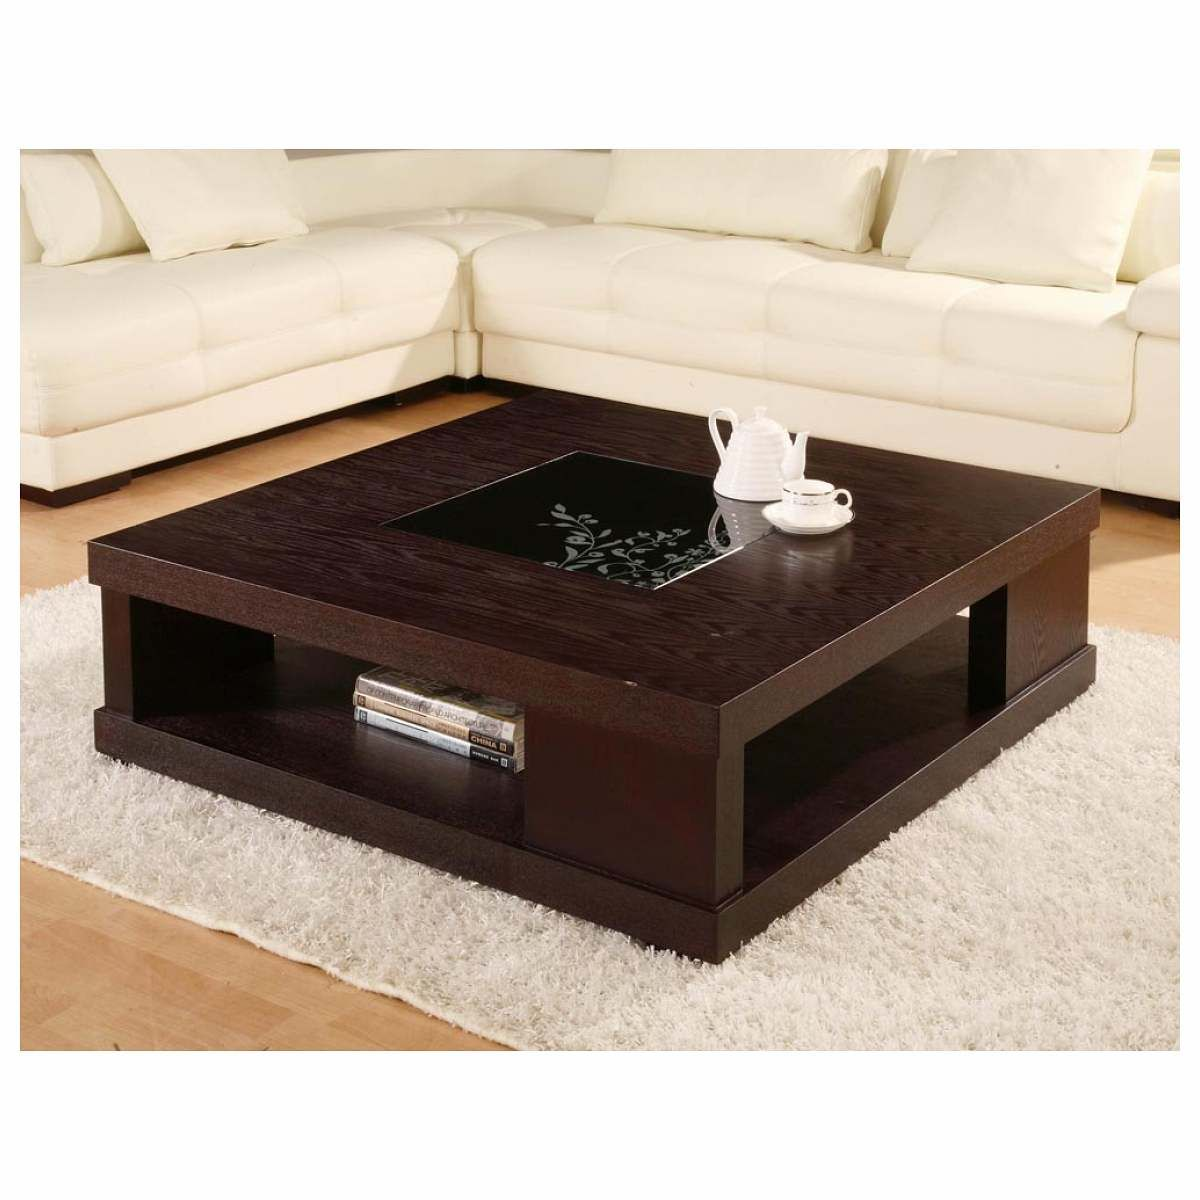 Dante Coffee Table Table Decor Living Room Living Room Table